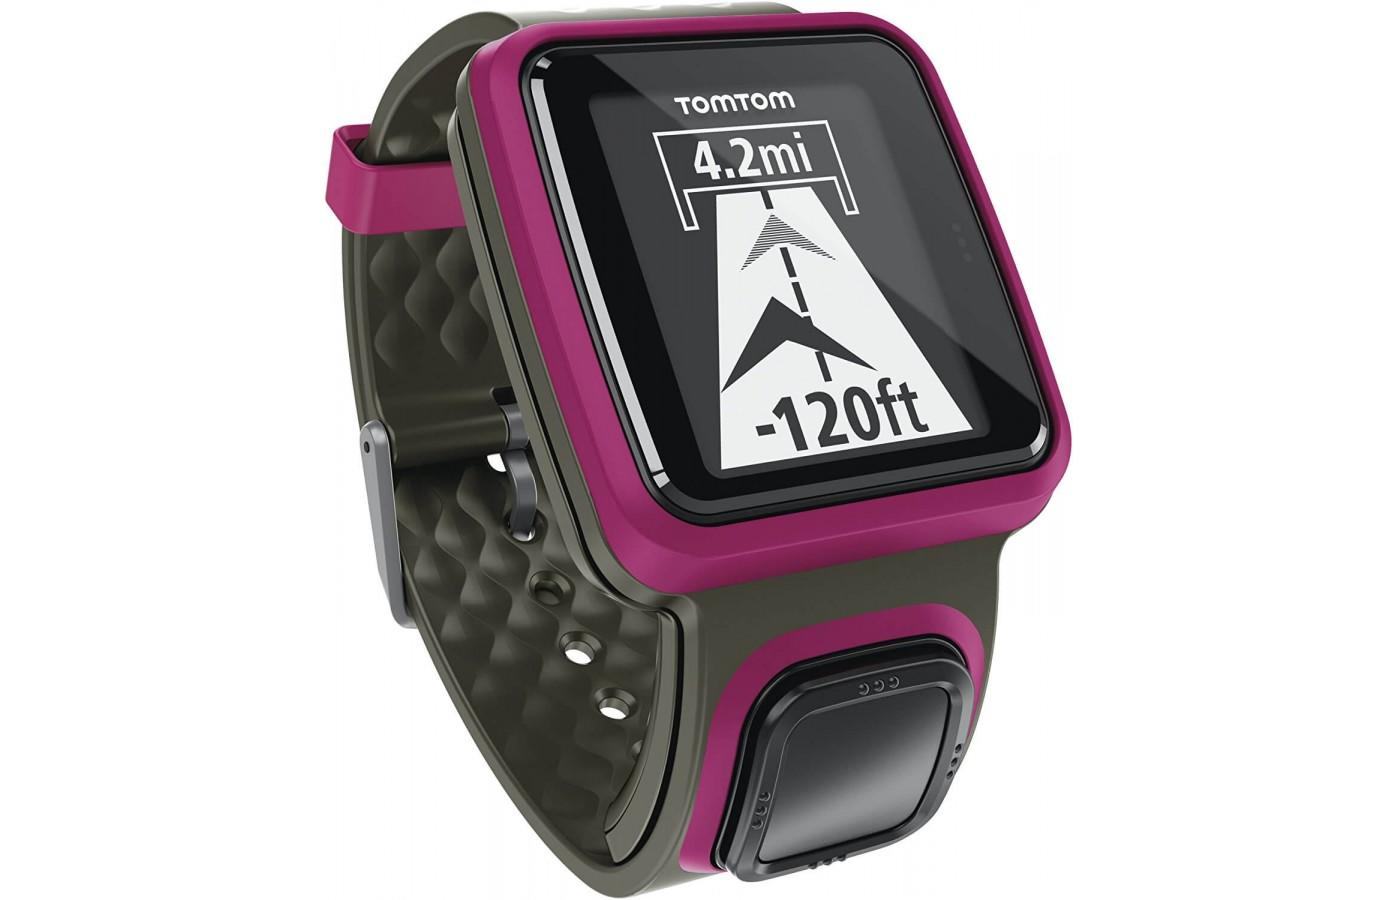 the TomTom Runner is designed for use on treadmills and open runs